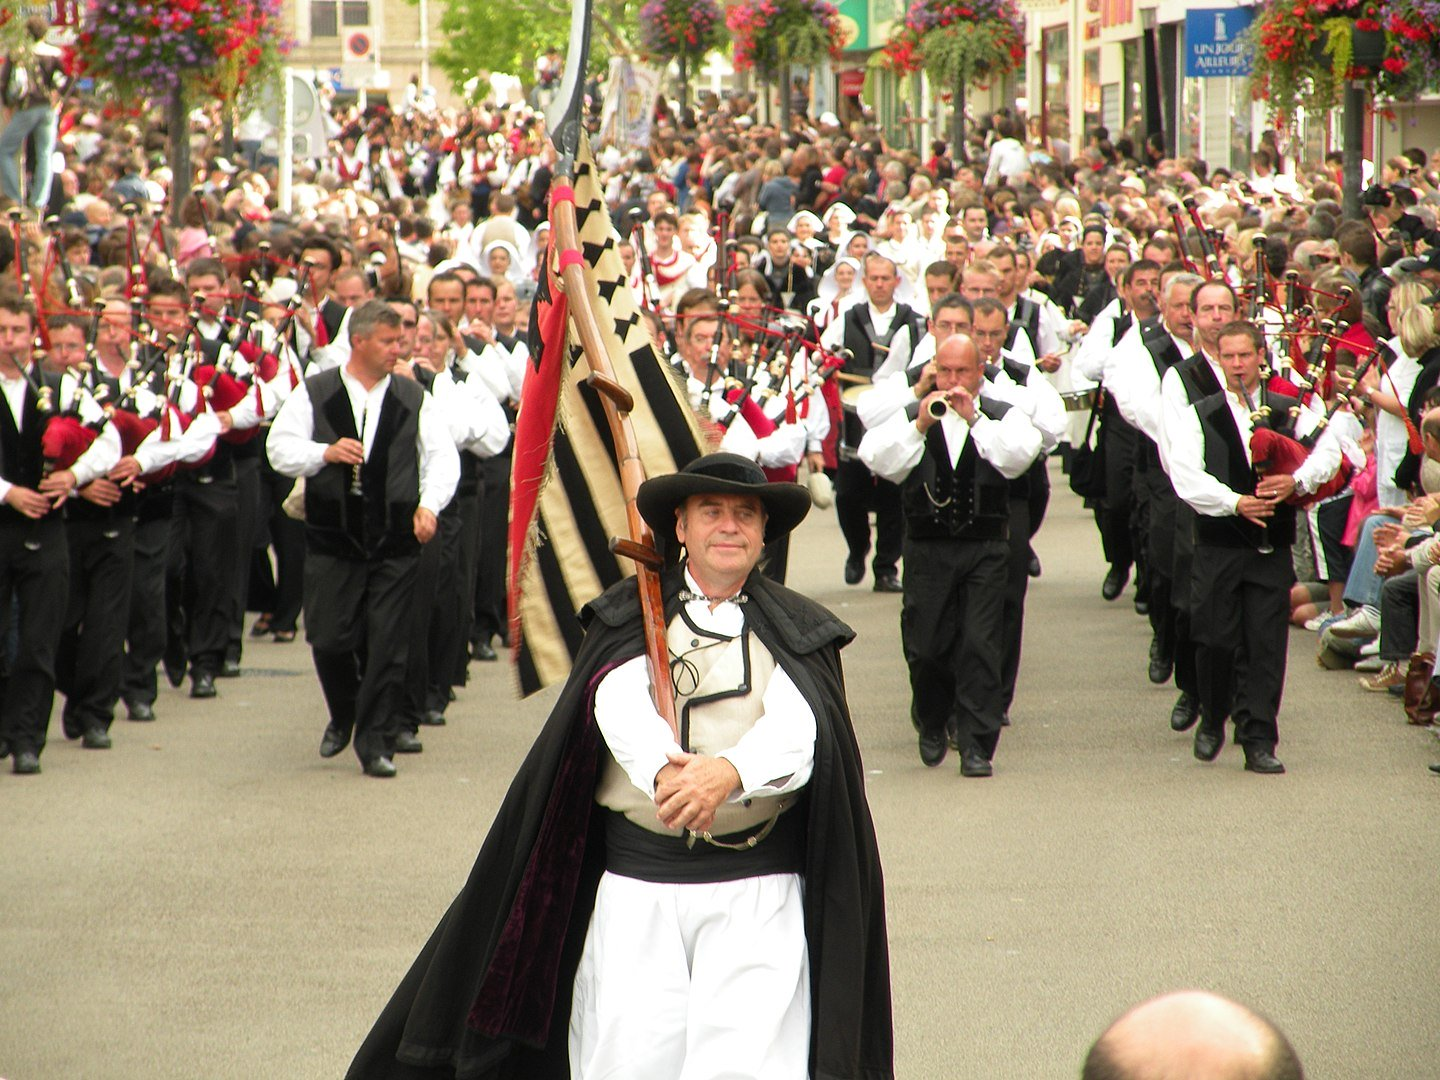 Holidays and celebrations in France - Festival Interceltique de Lorient © Pymouss - licence [CC BY-SA 3.0] from Wikimedia Commons